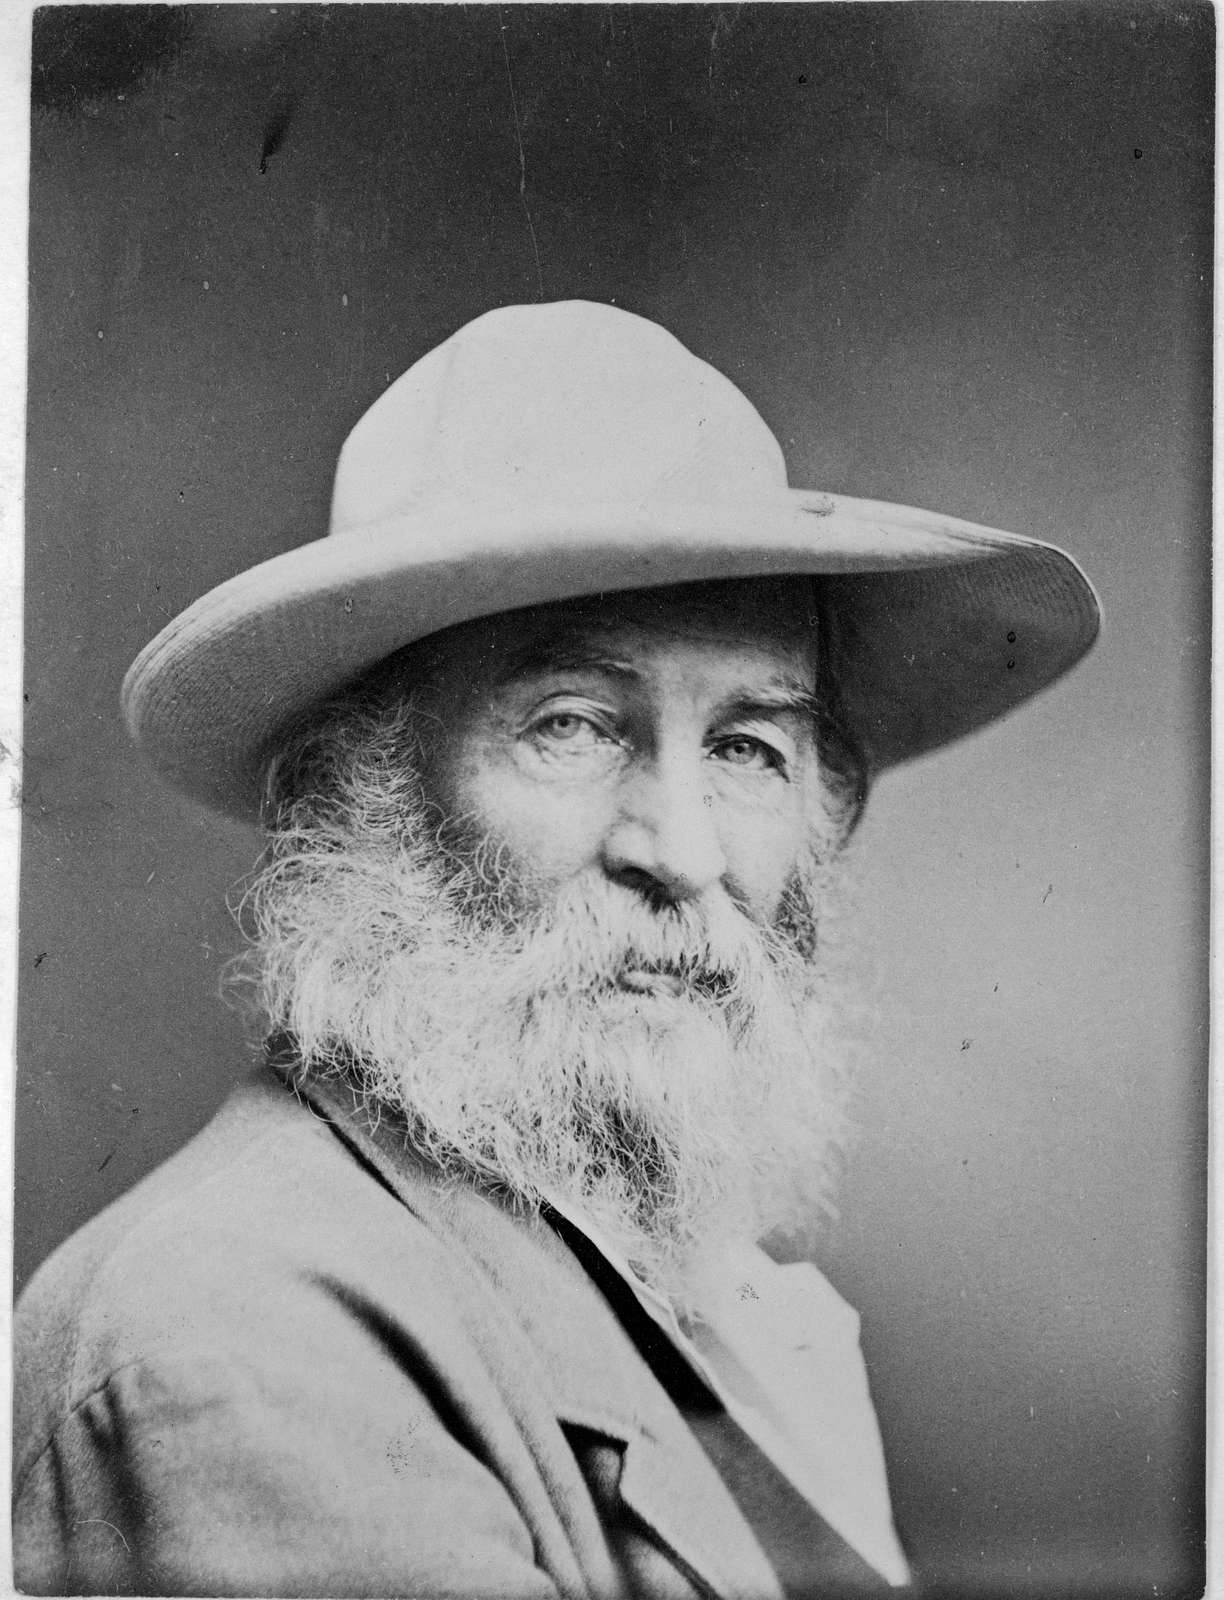 [Walt Whitman, head-and-shoulders portrait, facing front, wearing hat]